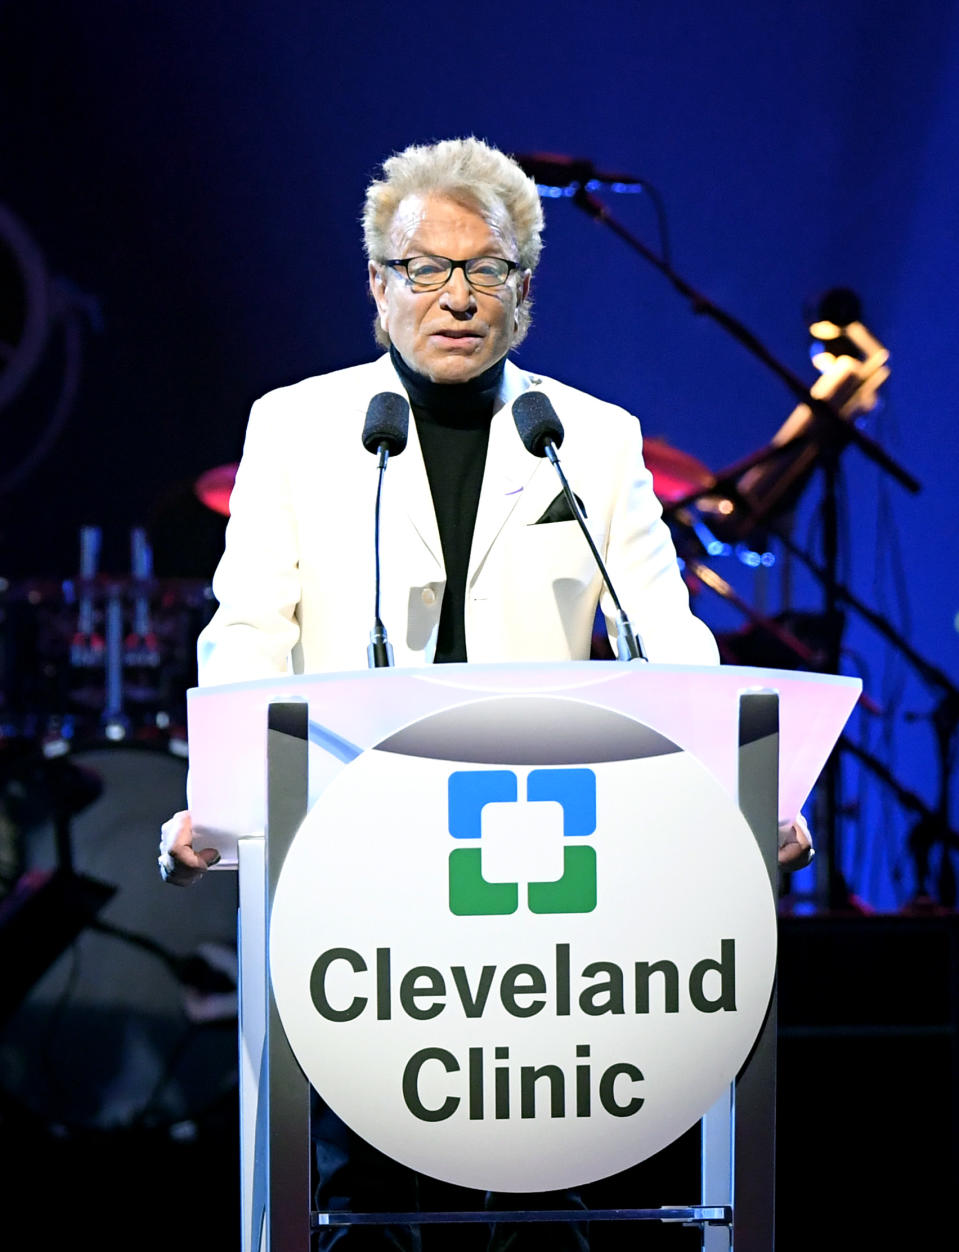 Siegfried Fischbacher speaks during the 23rd annual Keep Memory Alive 'Power of Love Gala' benefit for the Cleveland Clinic Lou Ruvo Center for Brain Health in 2019. (Photo by Bryan Steffy/Getty Images for Keep Memory Alive)